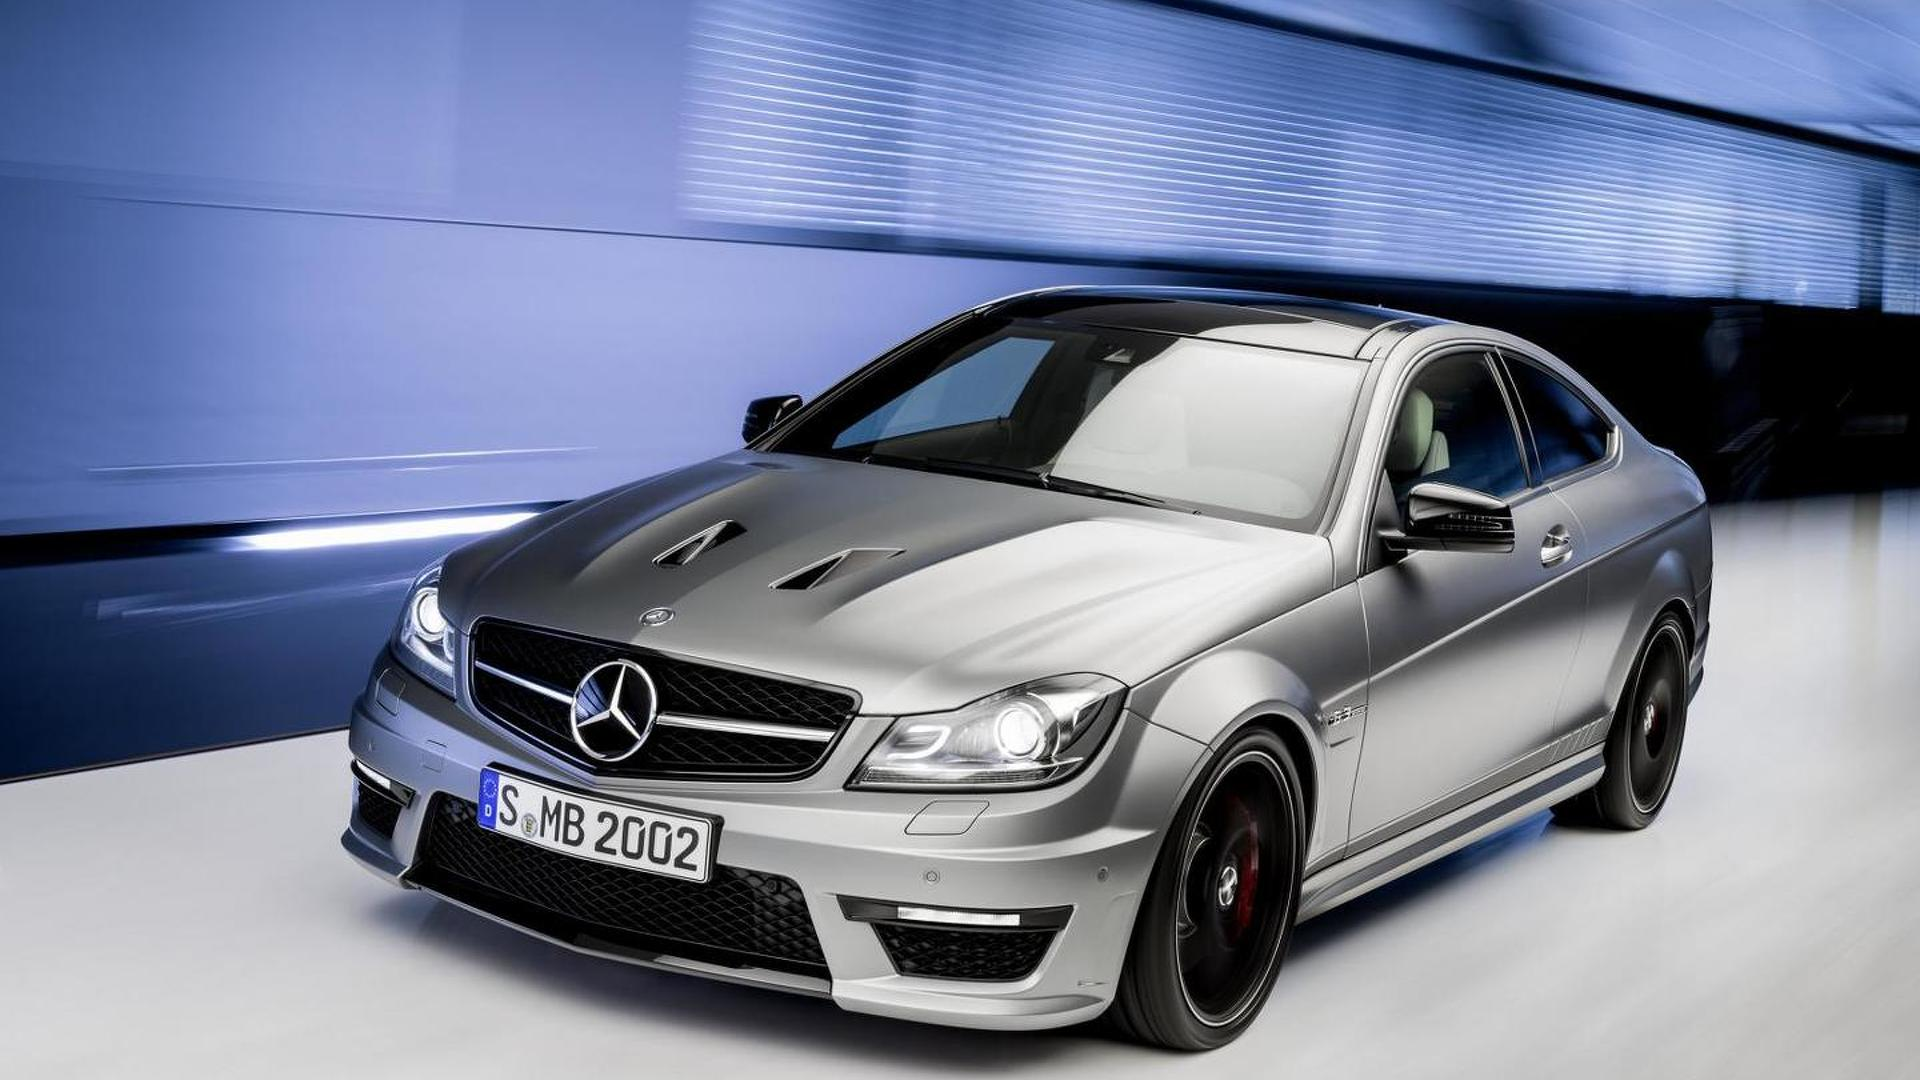 Mercedes-Benz A45 AMG and C63 AMG Edition 507 available on order